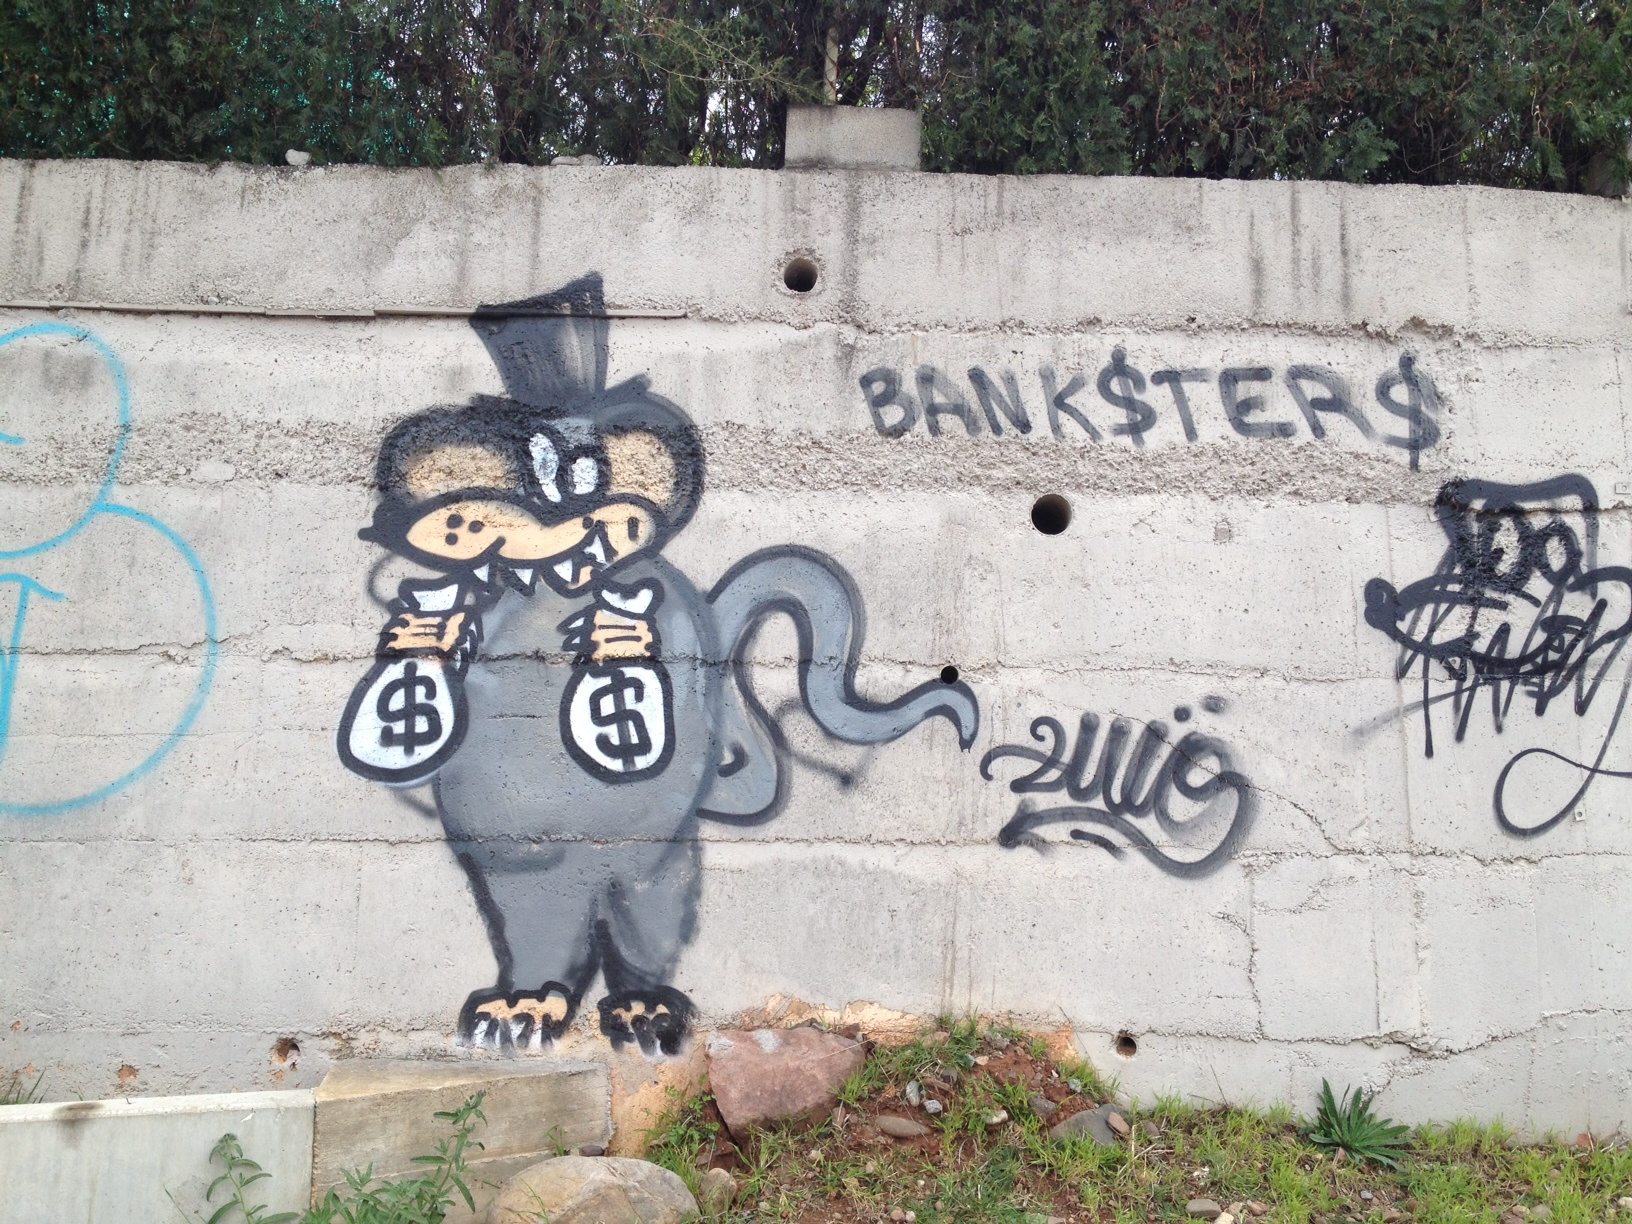 Bankster-Graffiti in Benicàssim